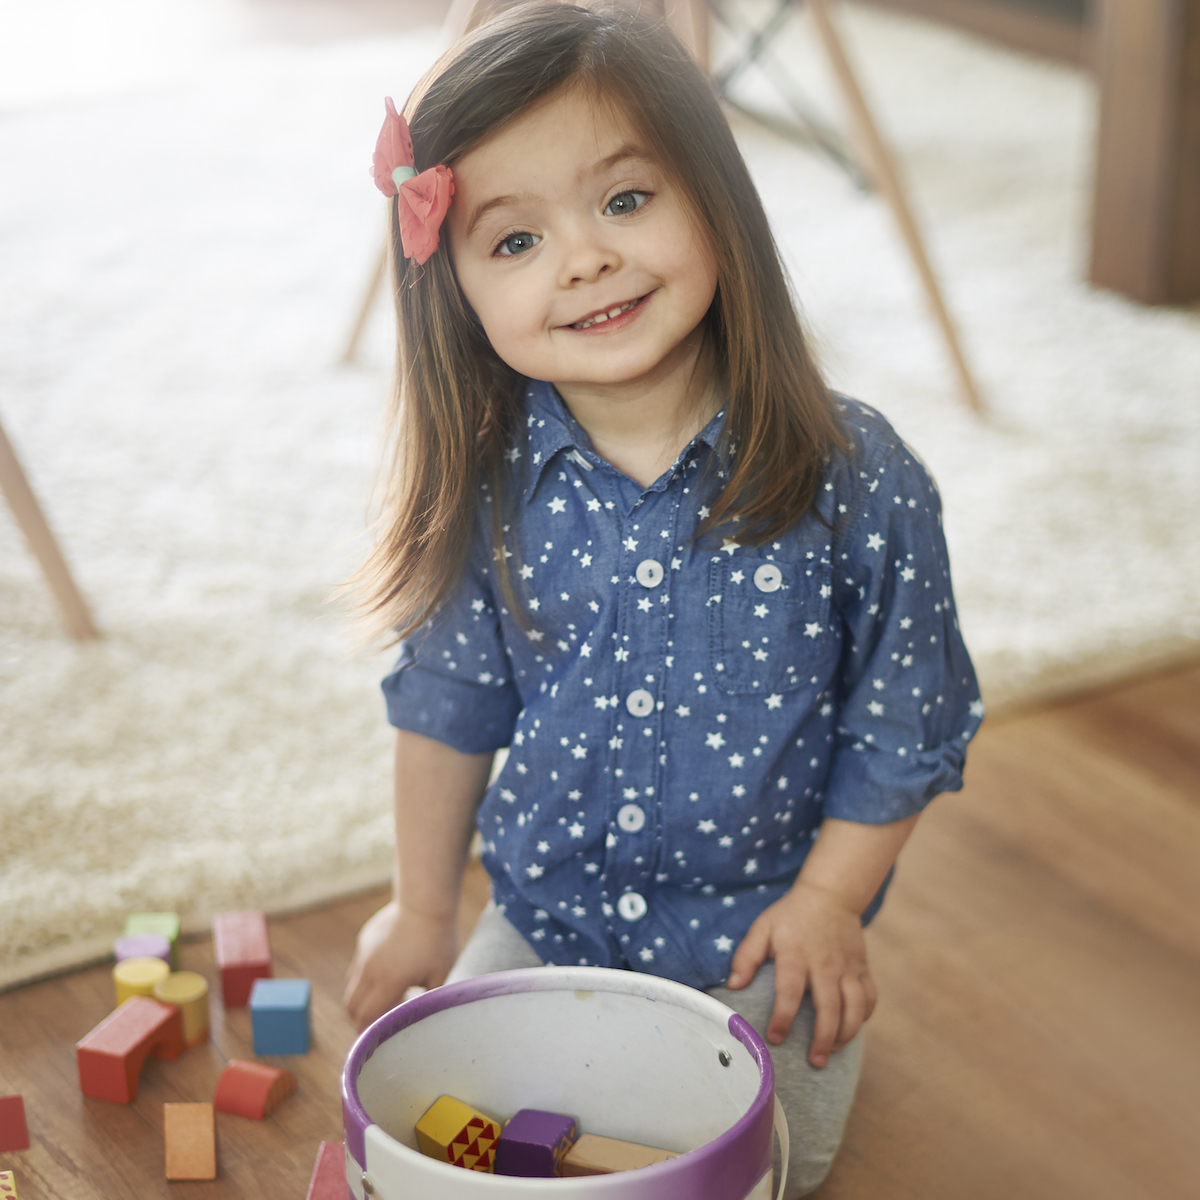 Adorable little girl smiling at the camera as she picks up toy blocks and puts them in a bucket.